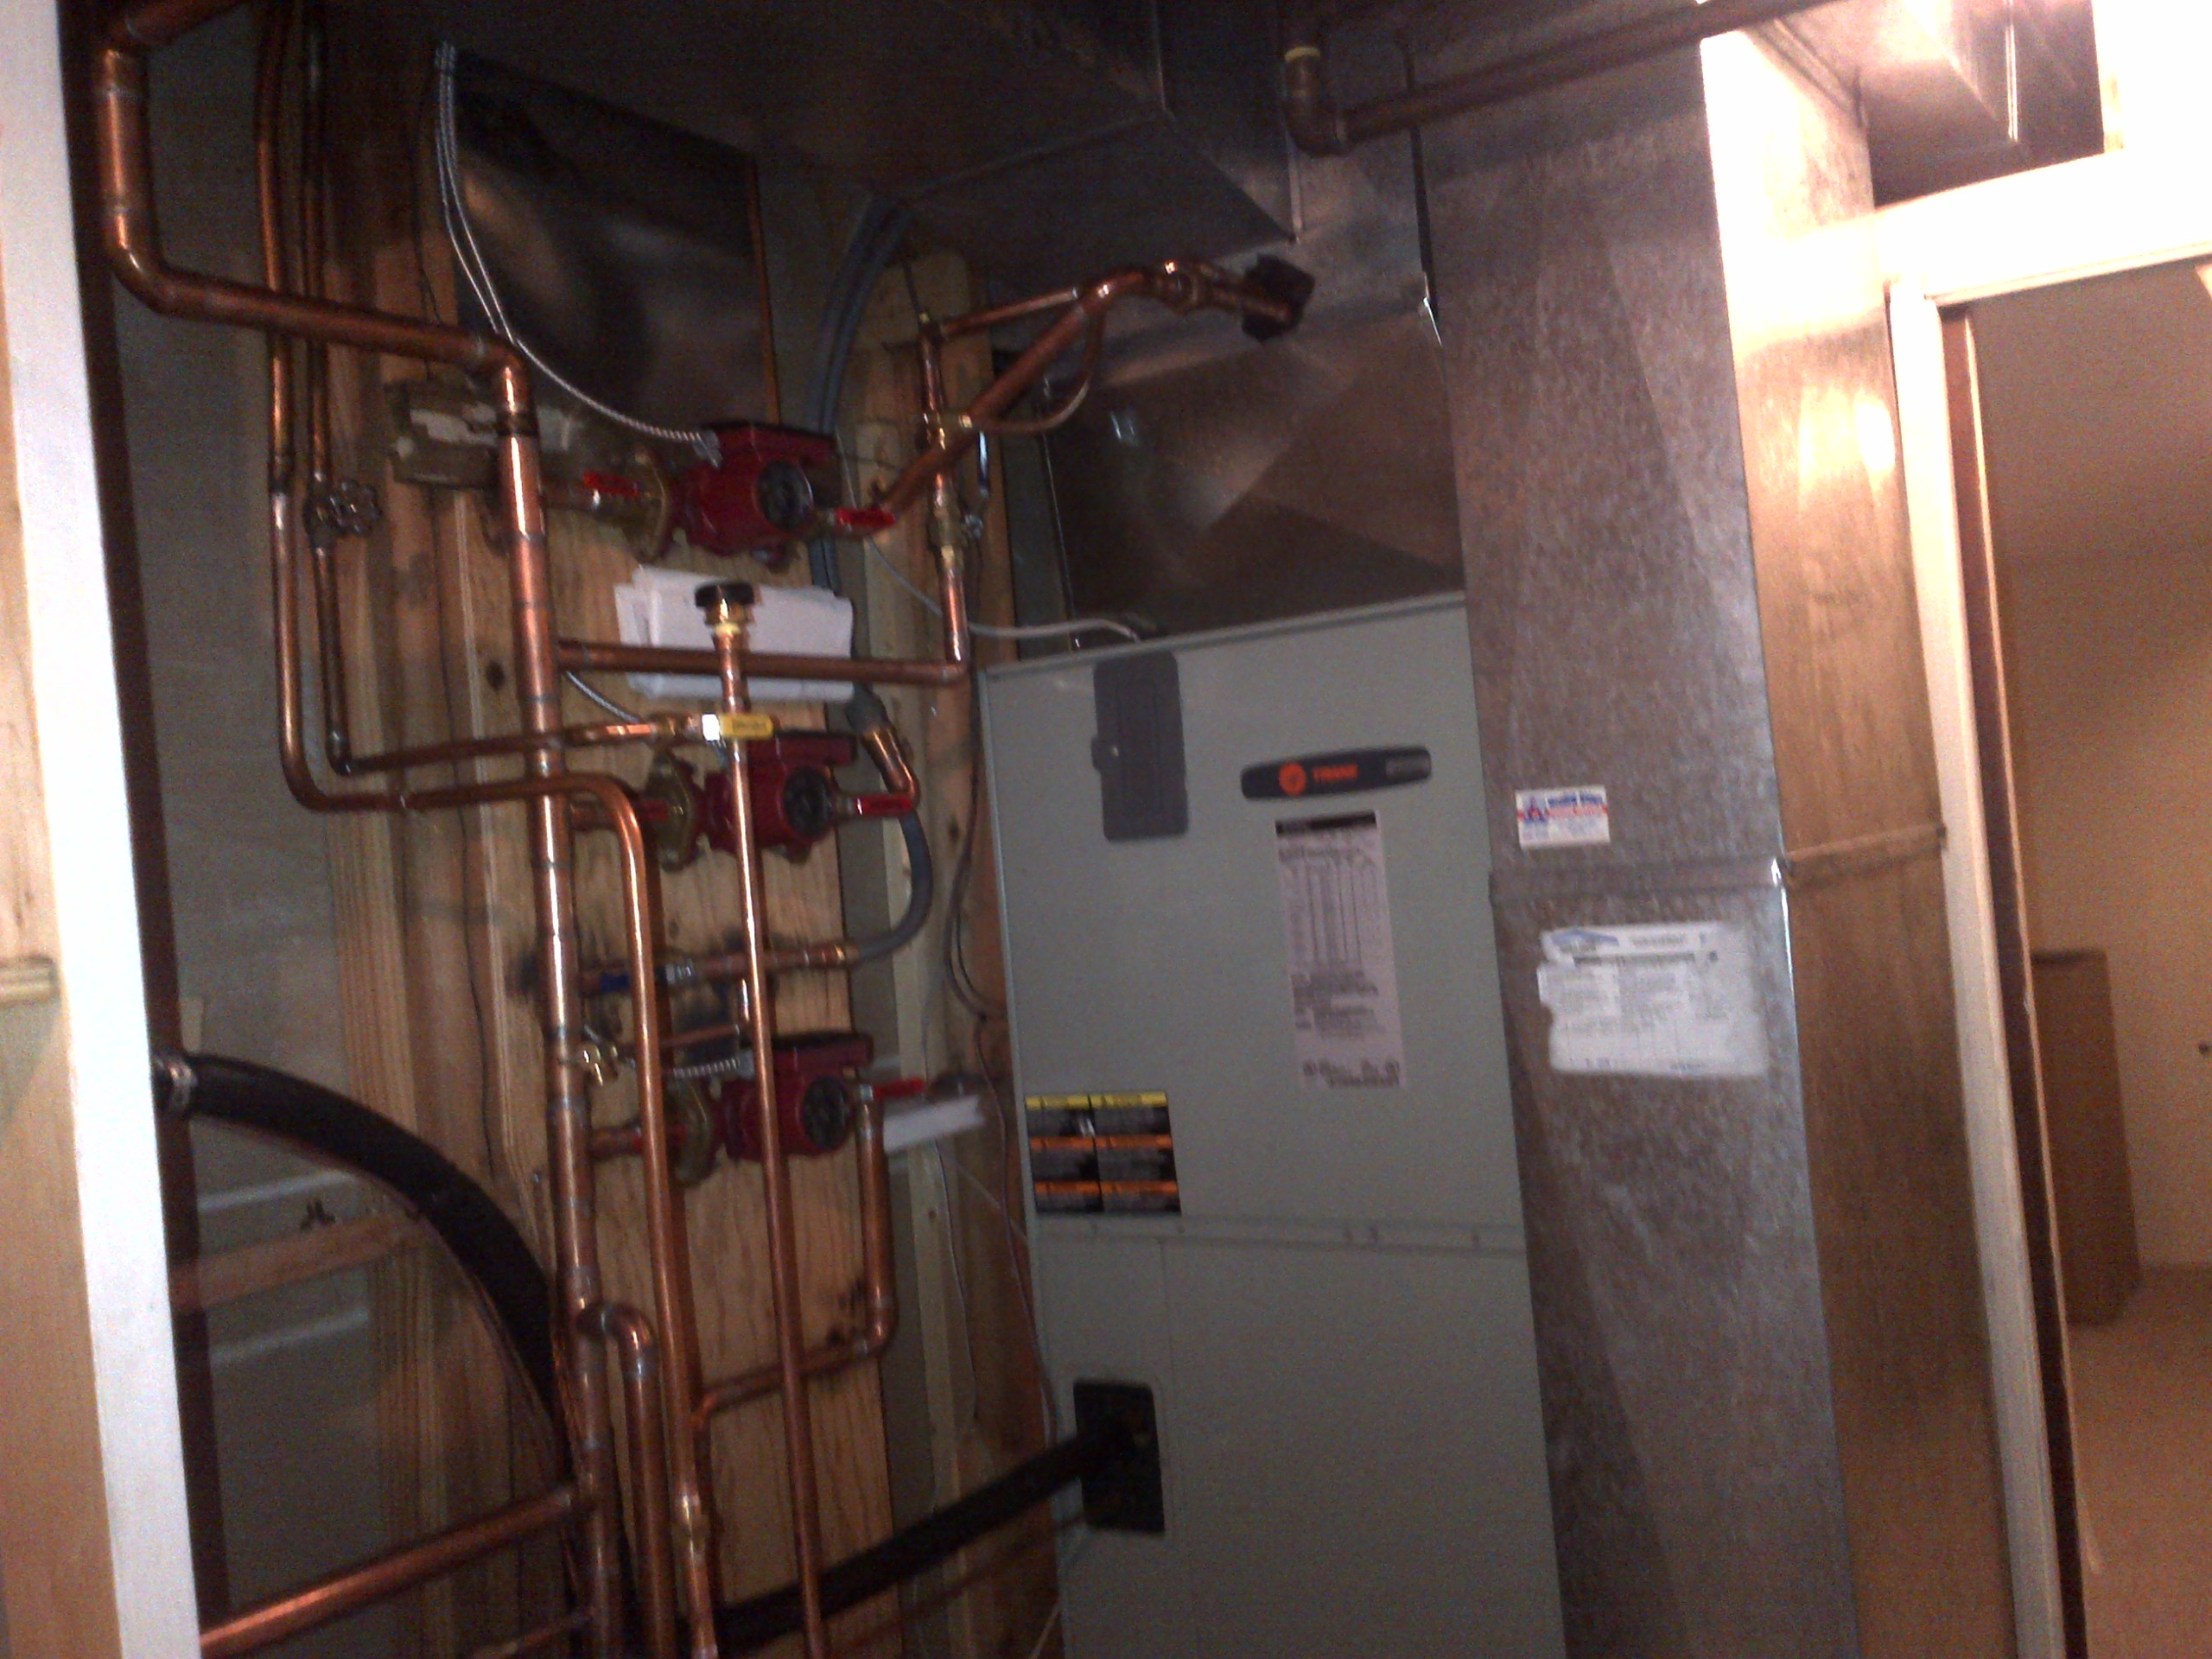 High Efficient Modulating Boiler Heat Pump Domestic Hot